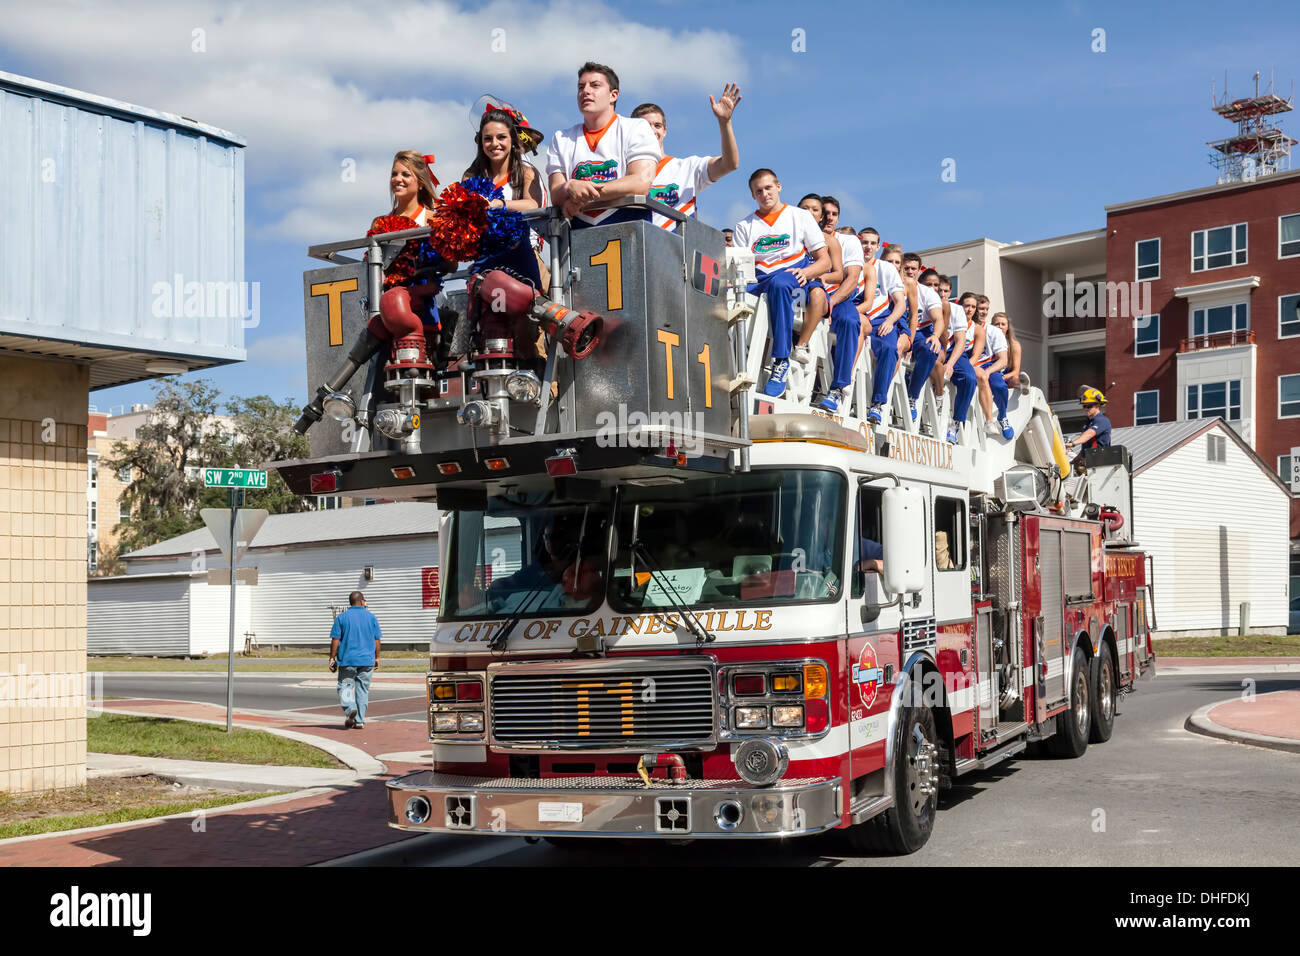 florida-cheer-leaders-squad-riding-on-a-